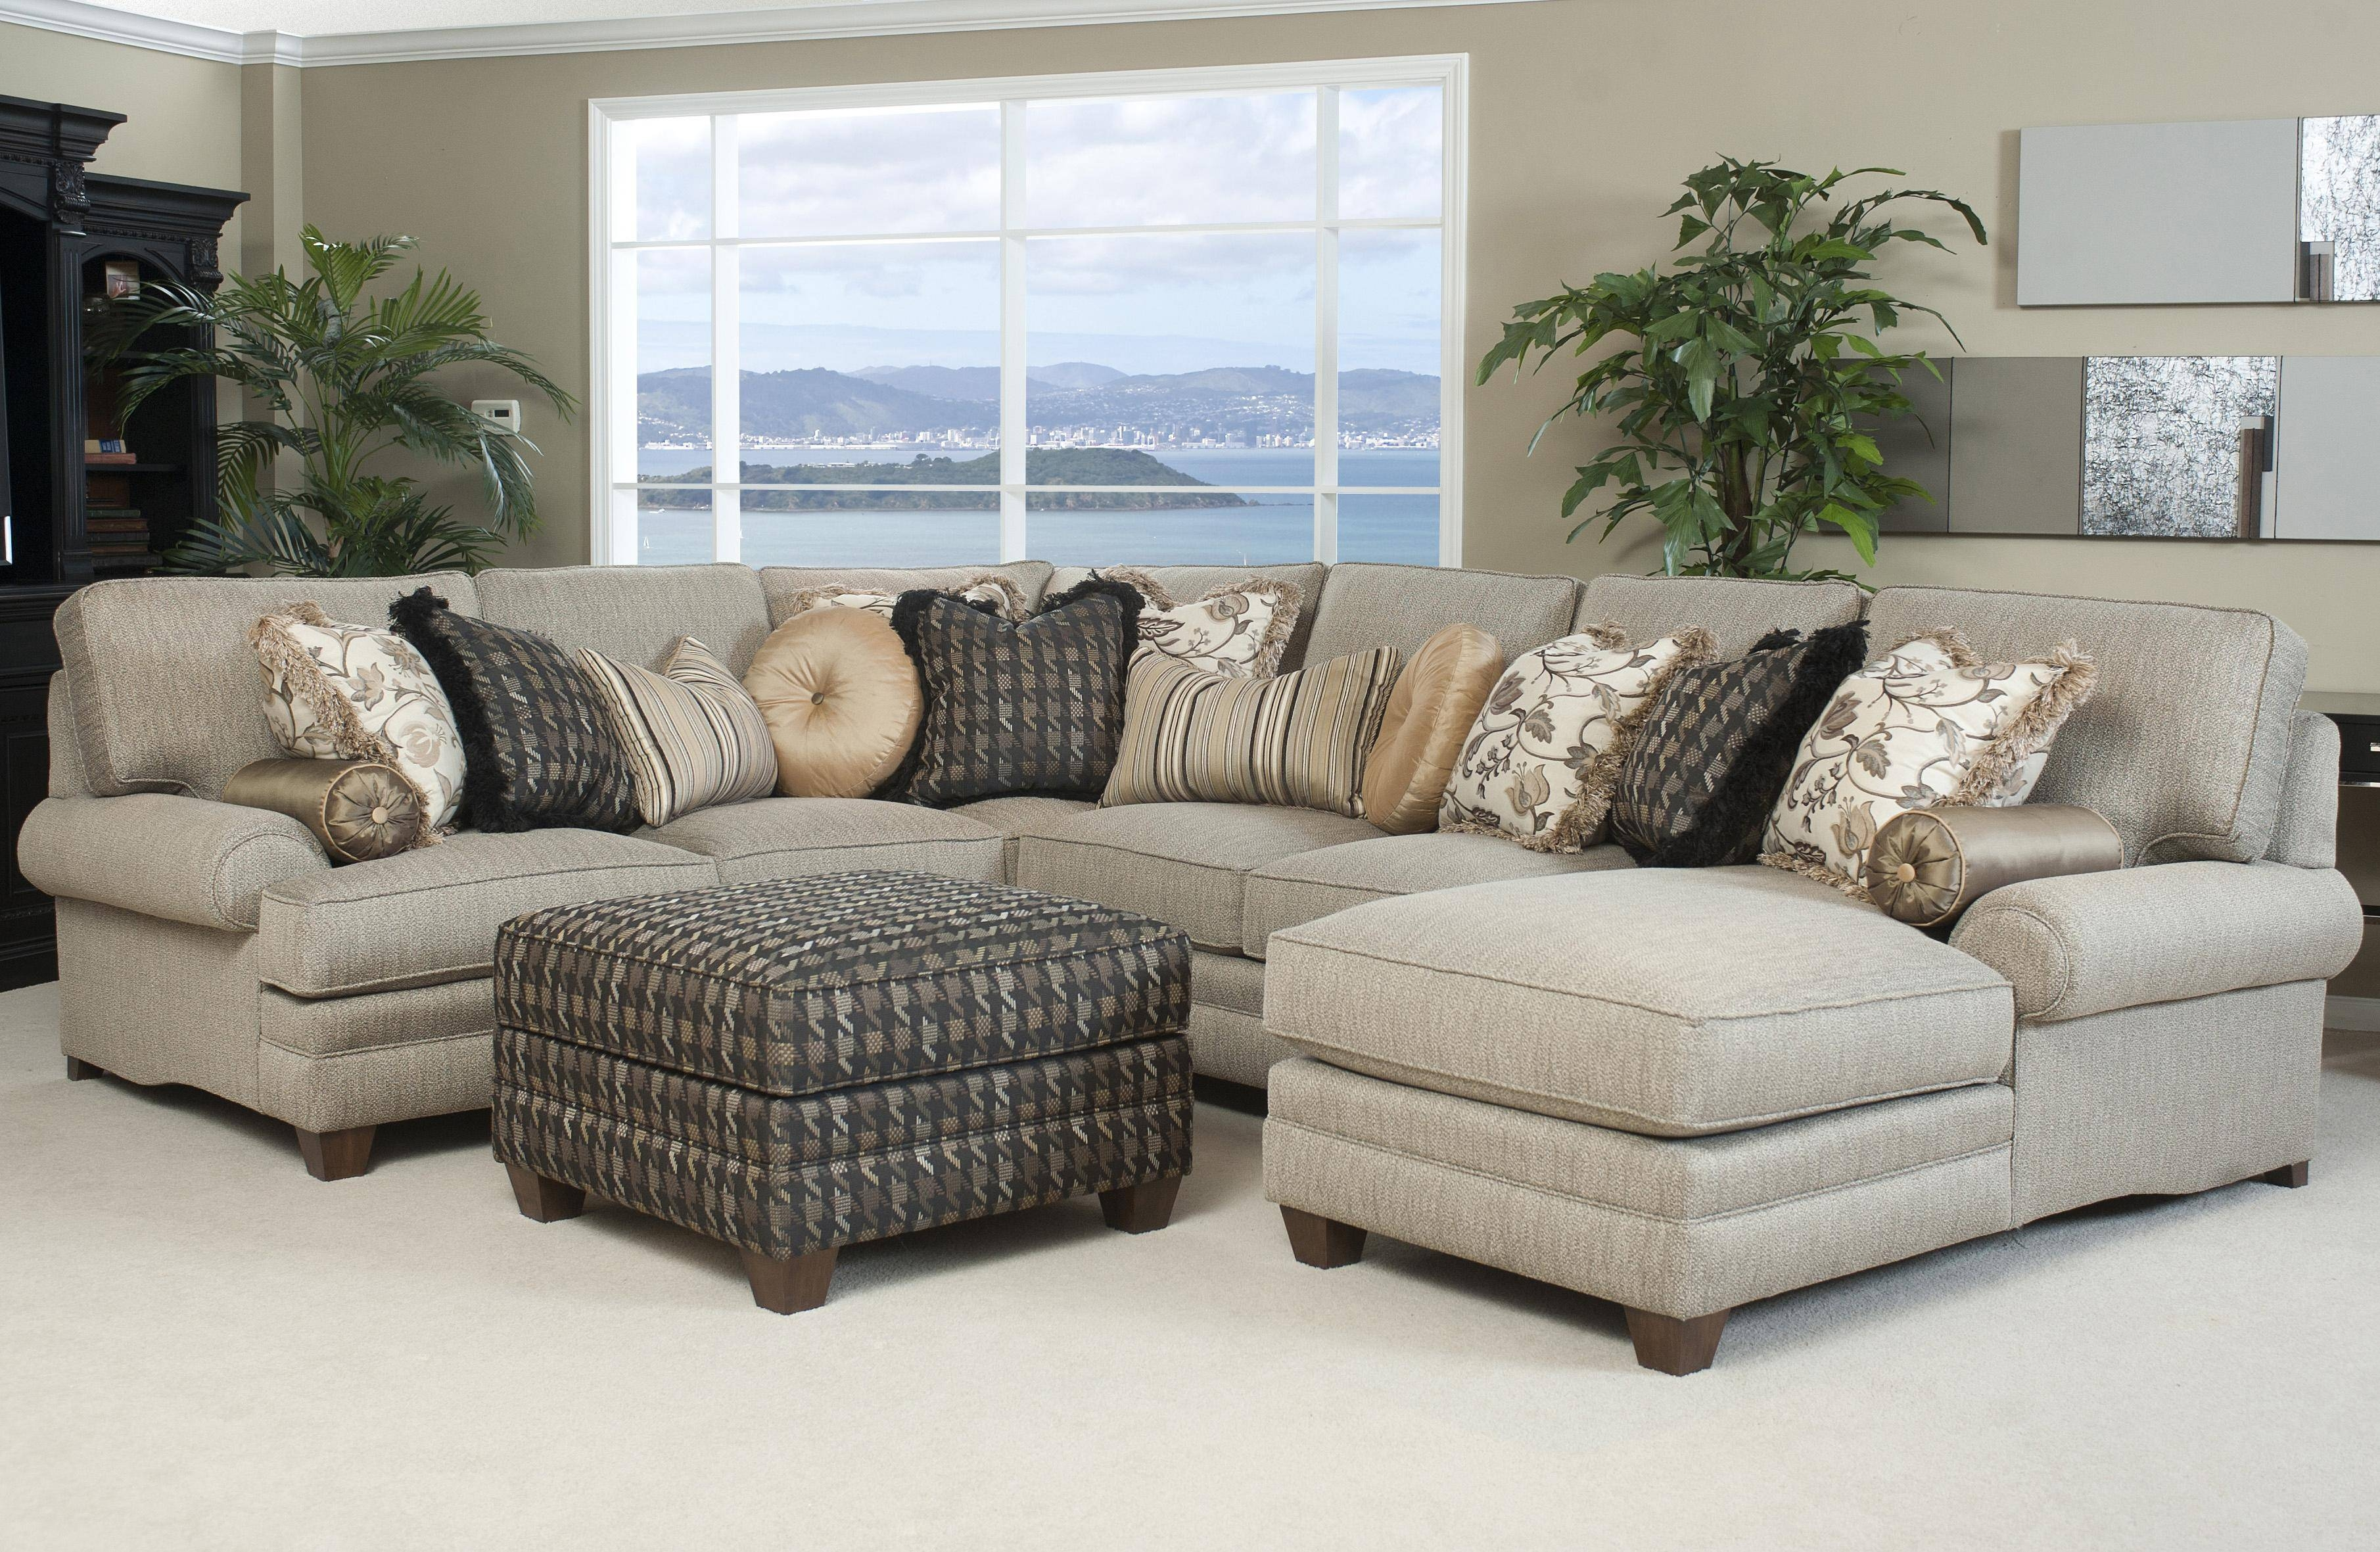 Traditional Styled Sectional Sofa With Comfortable Pillowed Seat inside Sectinal Sofas (Image 28 of 30)